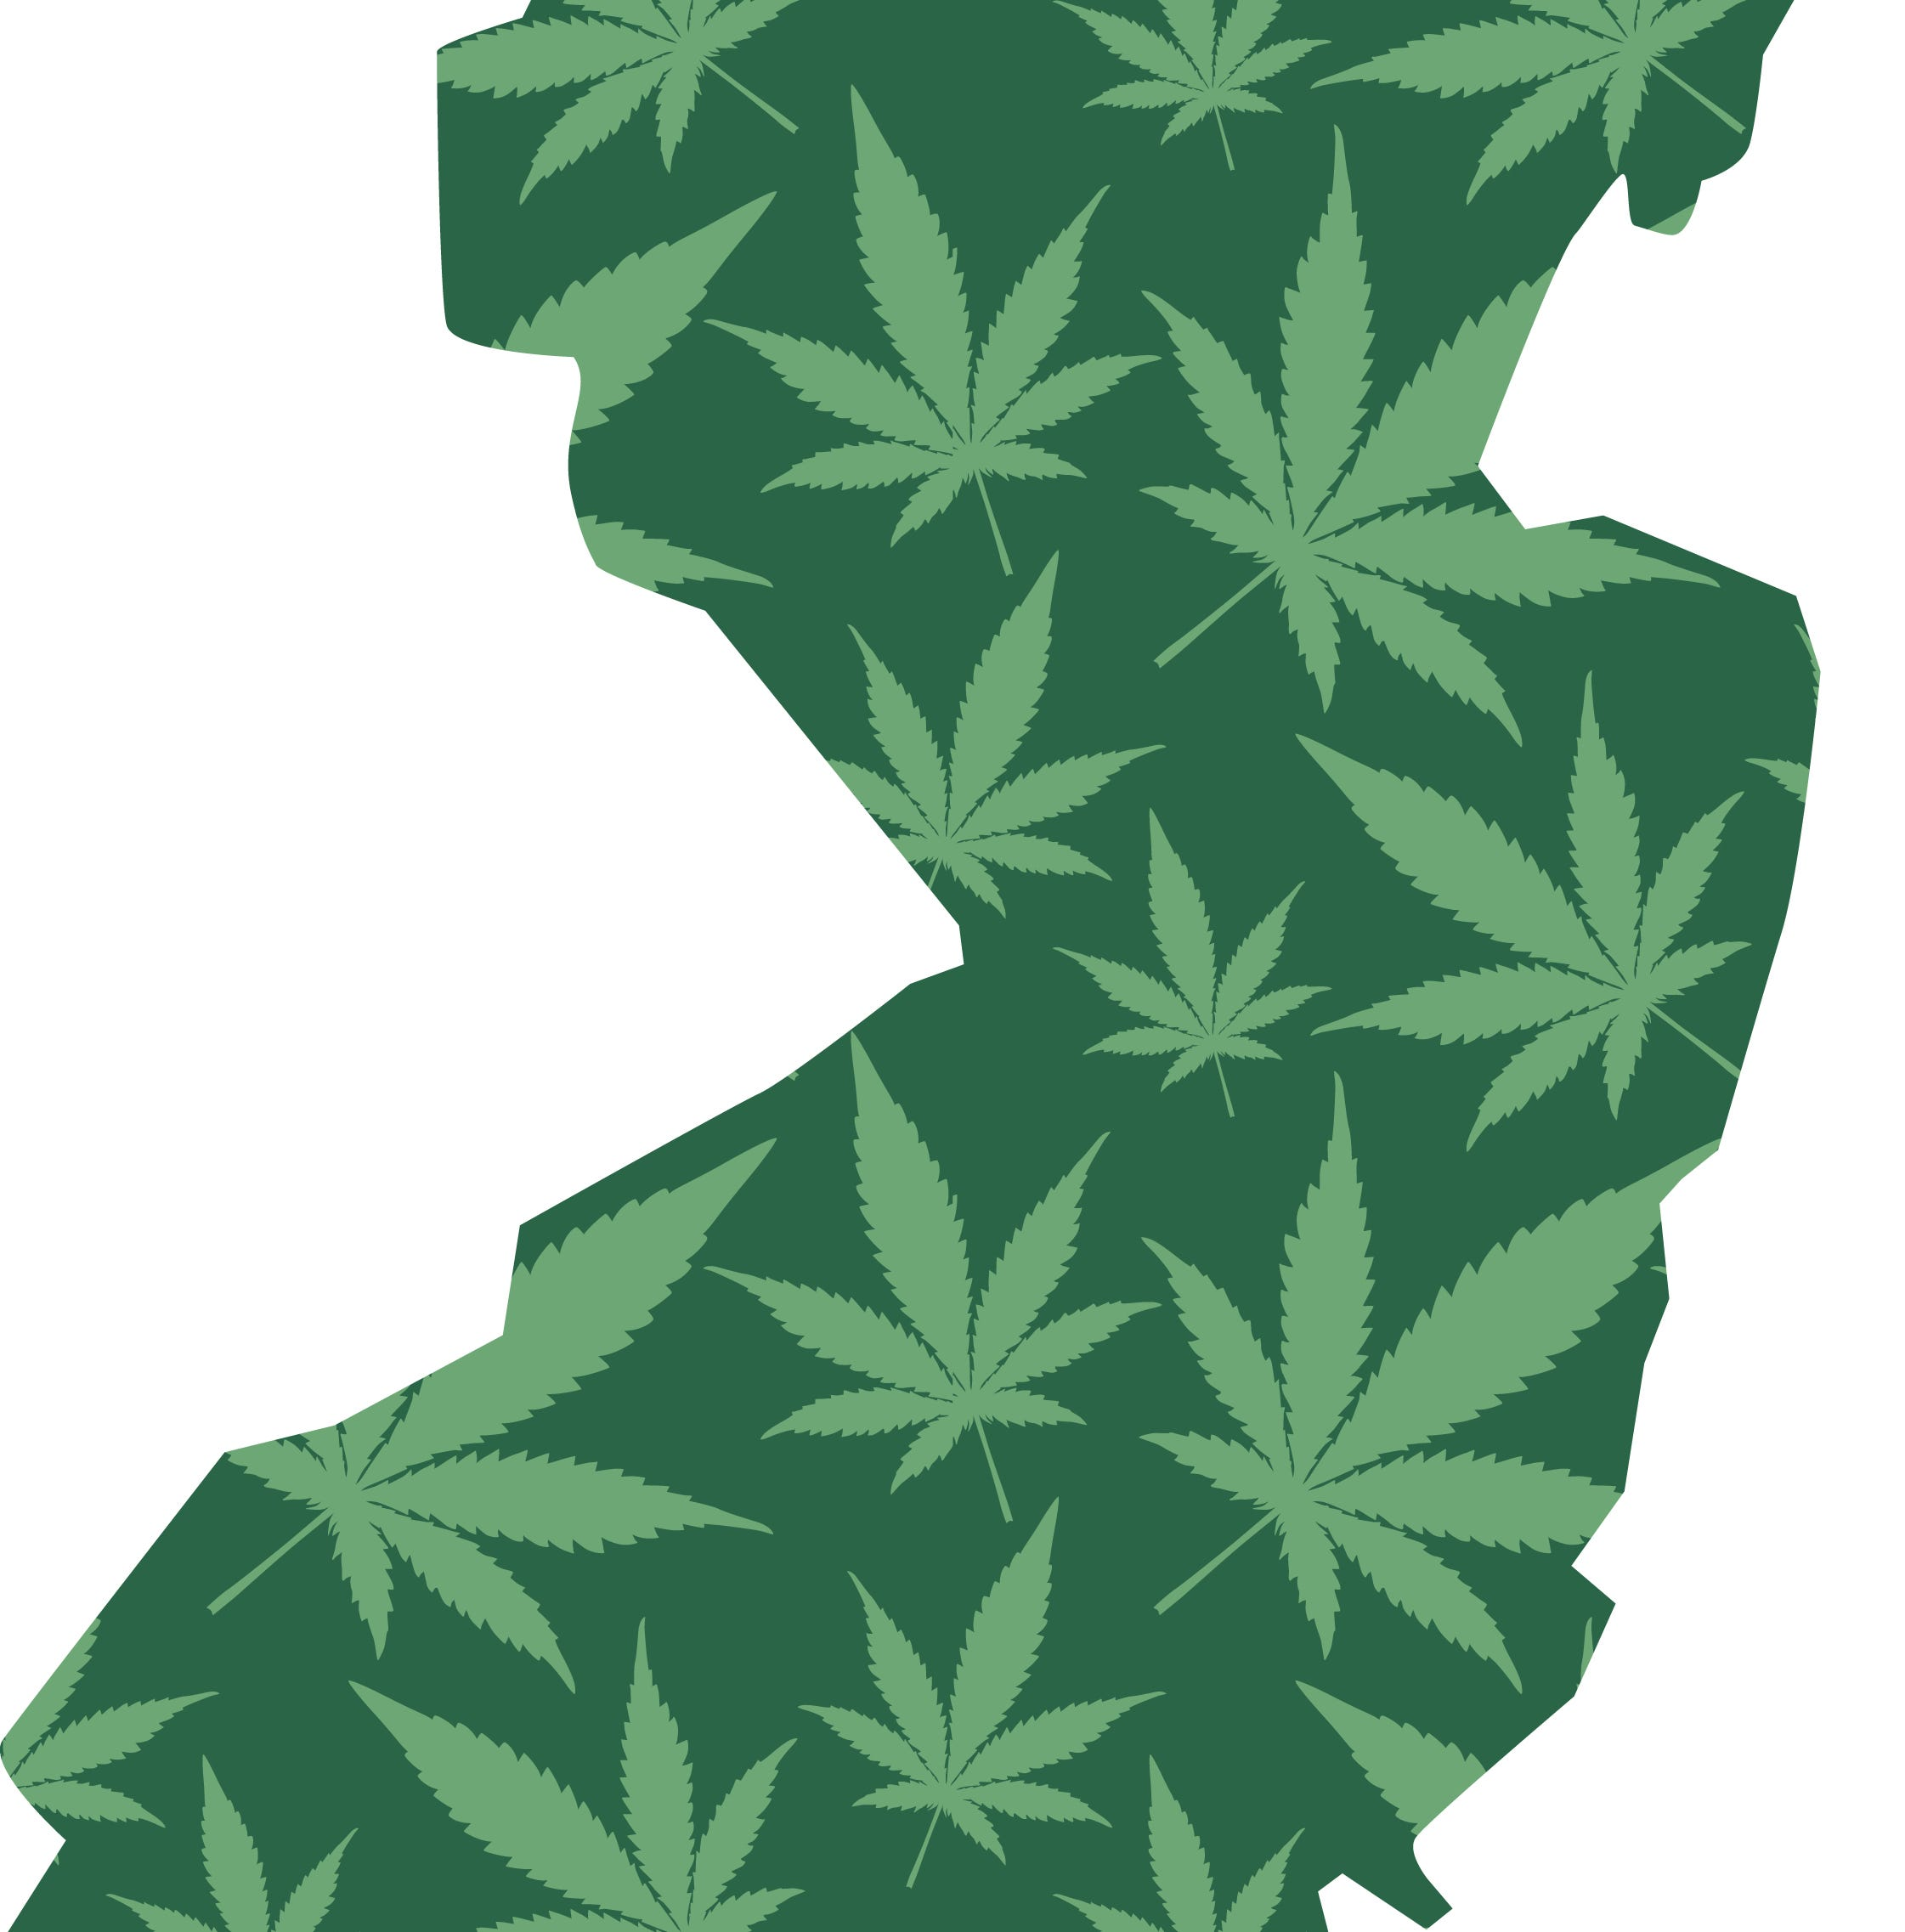 NJ marijuana legalization committee hearings set for Monday; legal weed vote next?